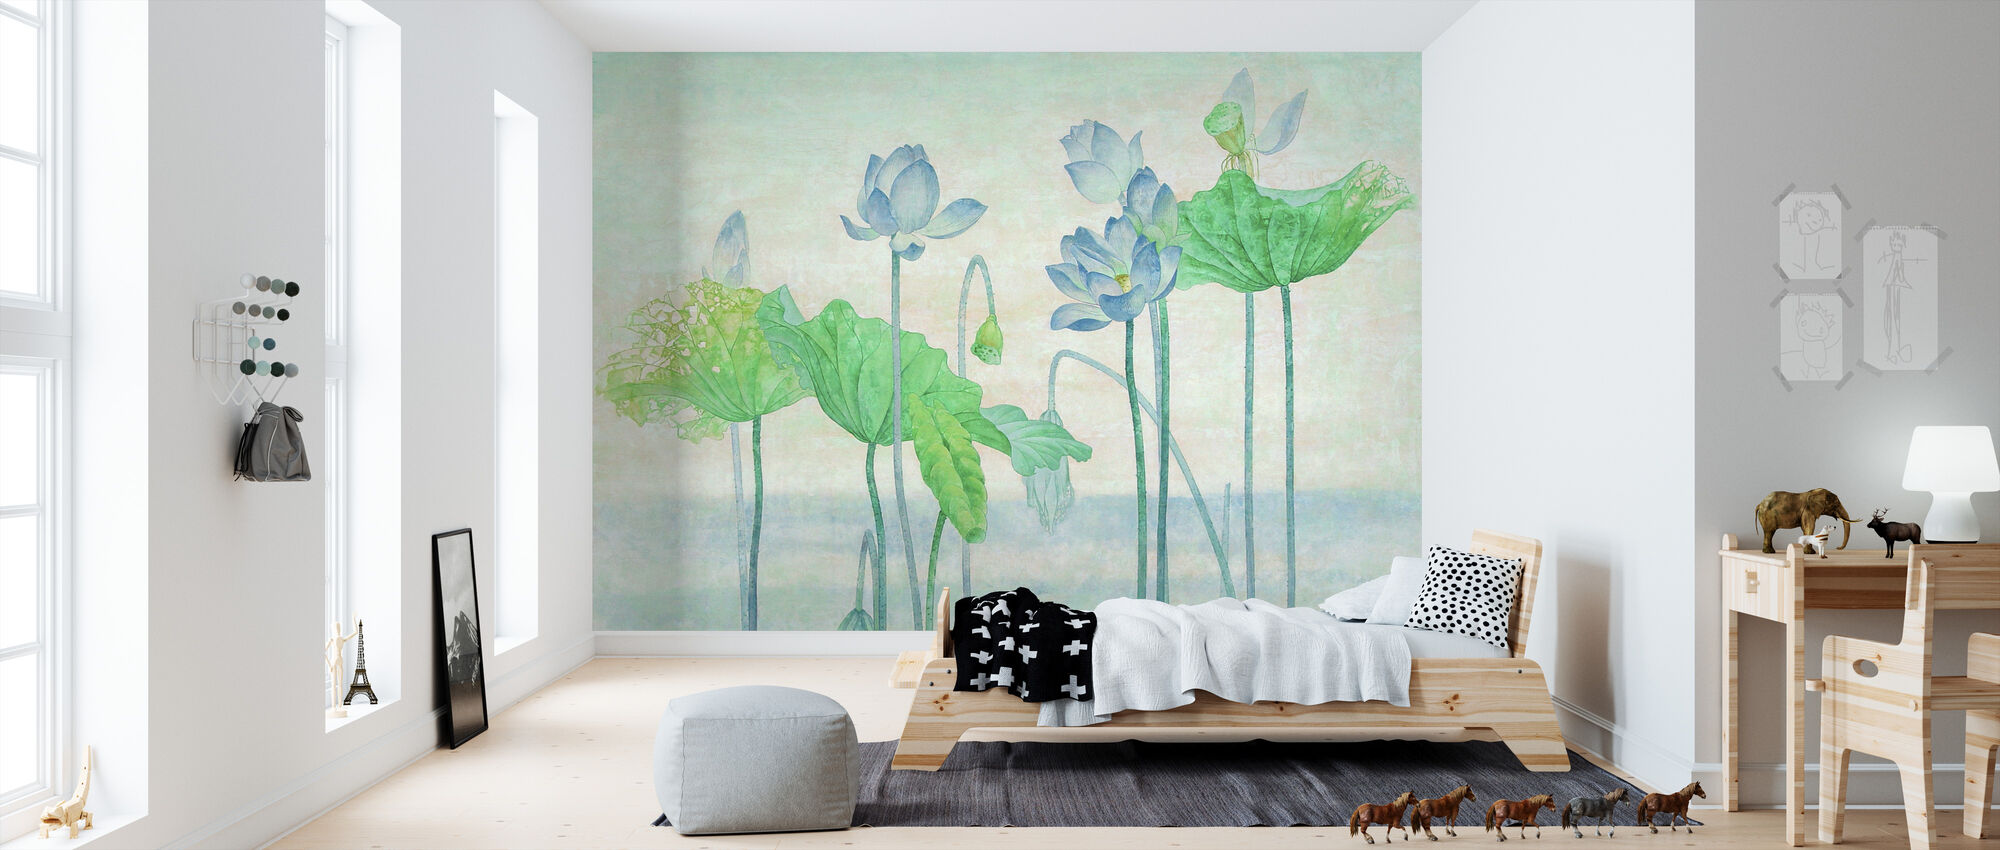 Morning Mist - Wallpaper - Kids Room